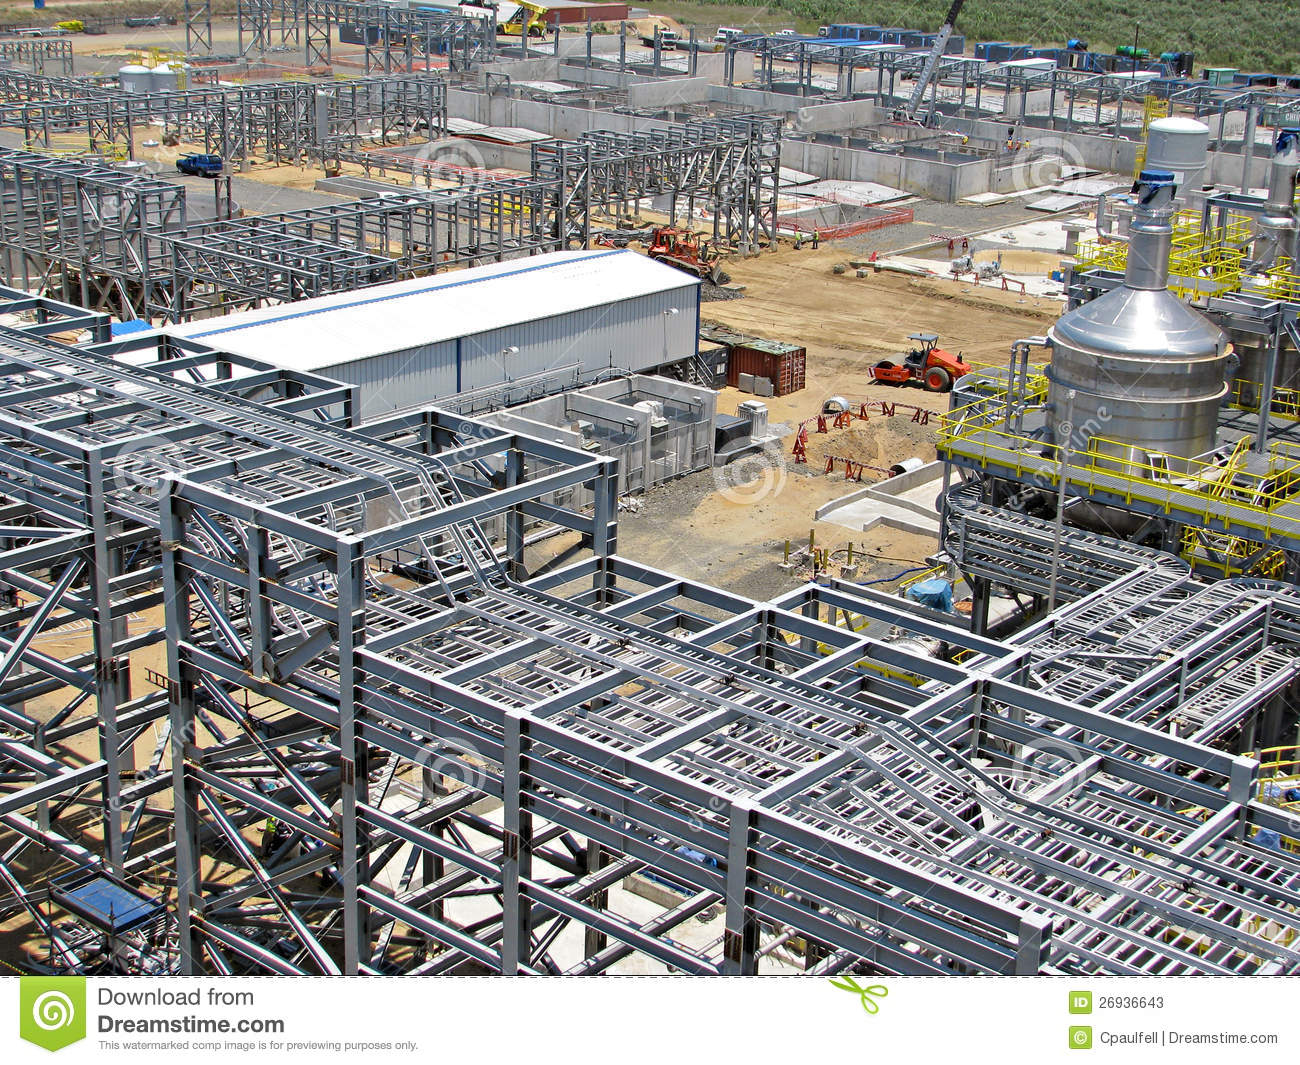 Structural steel pipe racks and cable stock image